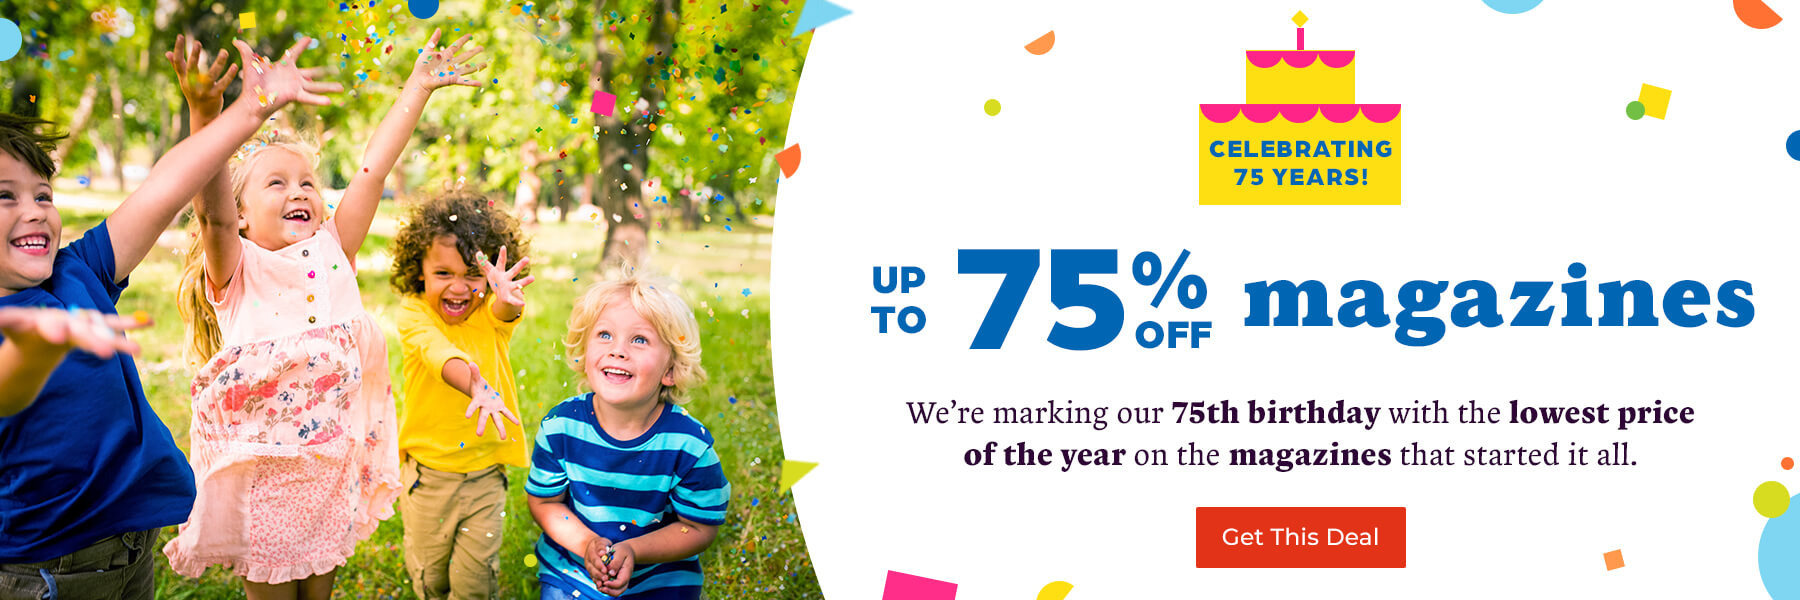 Celebrating our 75th birthday with up to 75% off magazines for a limited time only!